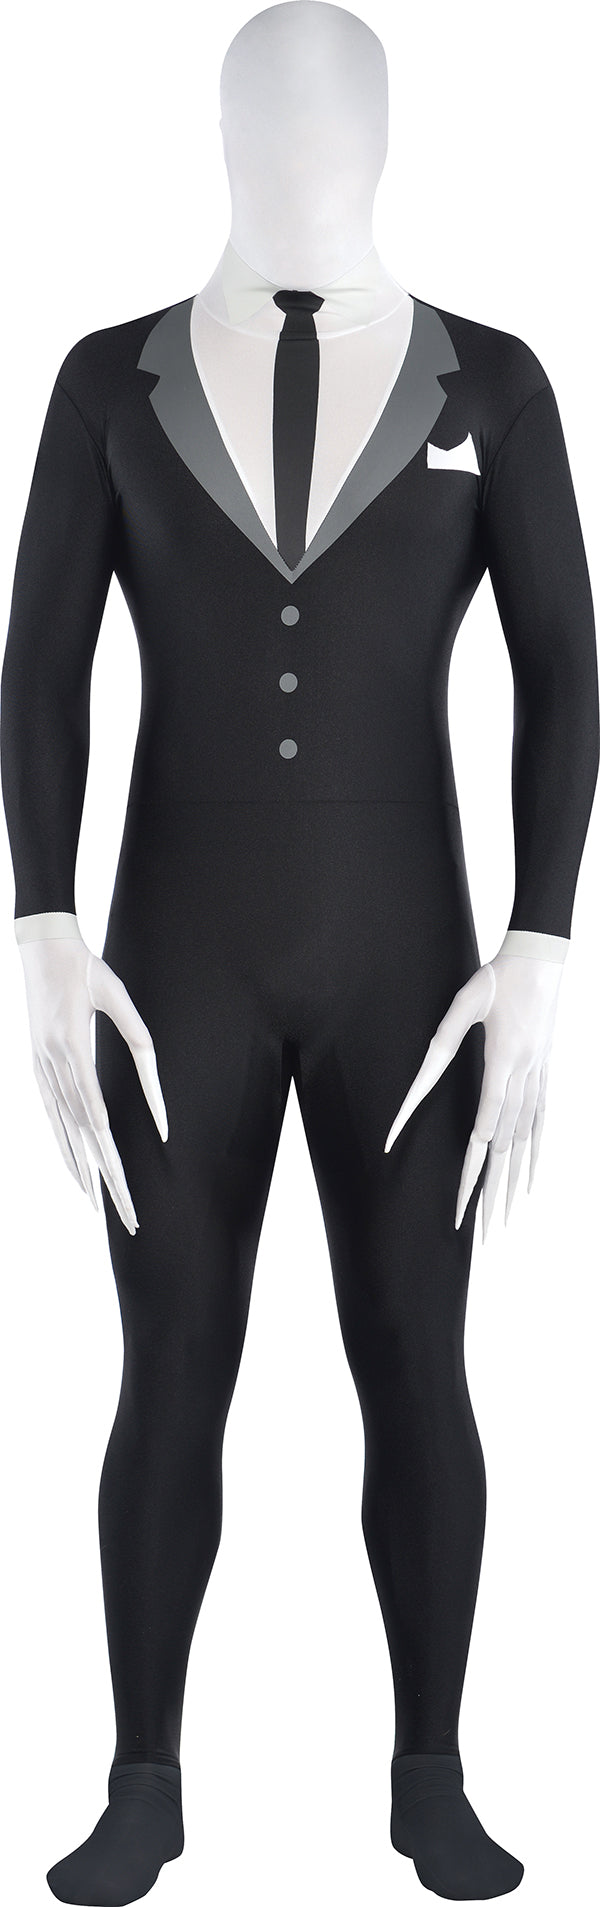 Amscan Adult Slender-Man Party-suit Costume - Large (Fits up to 5'10), Black